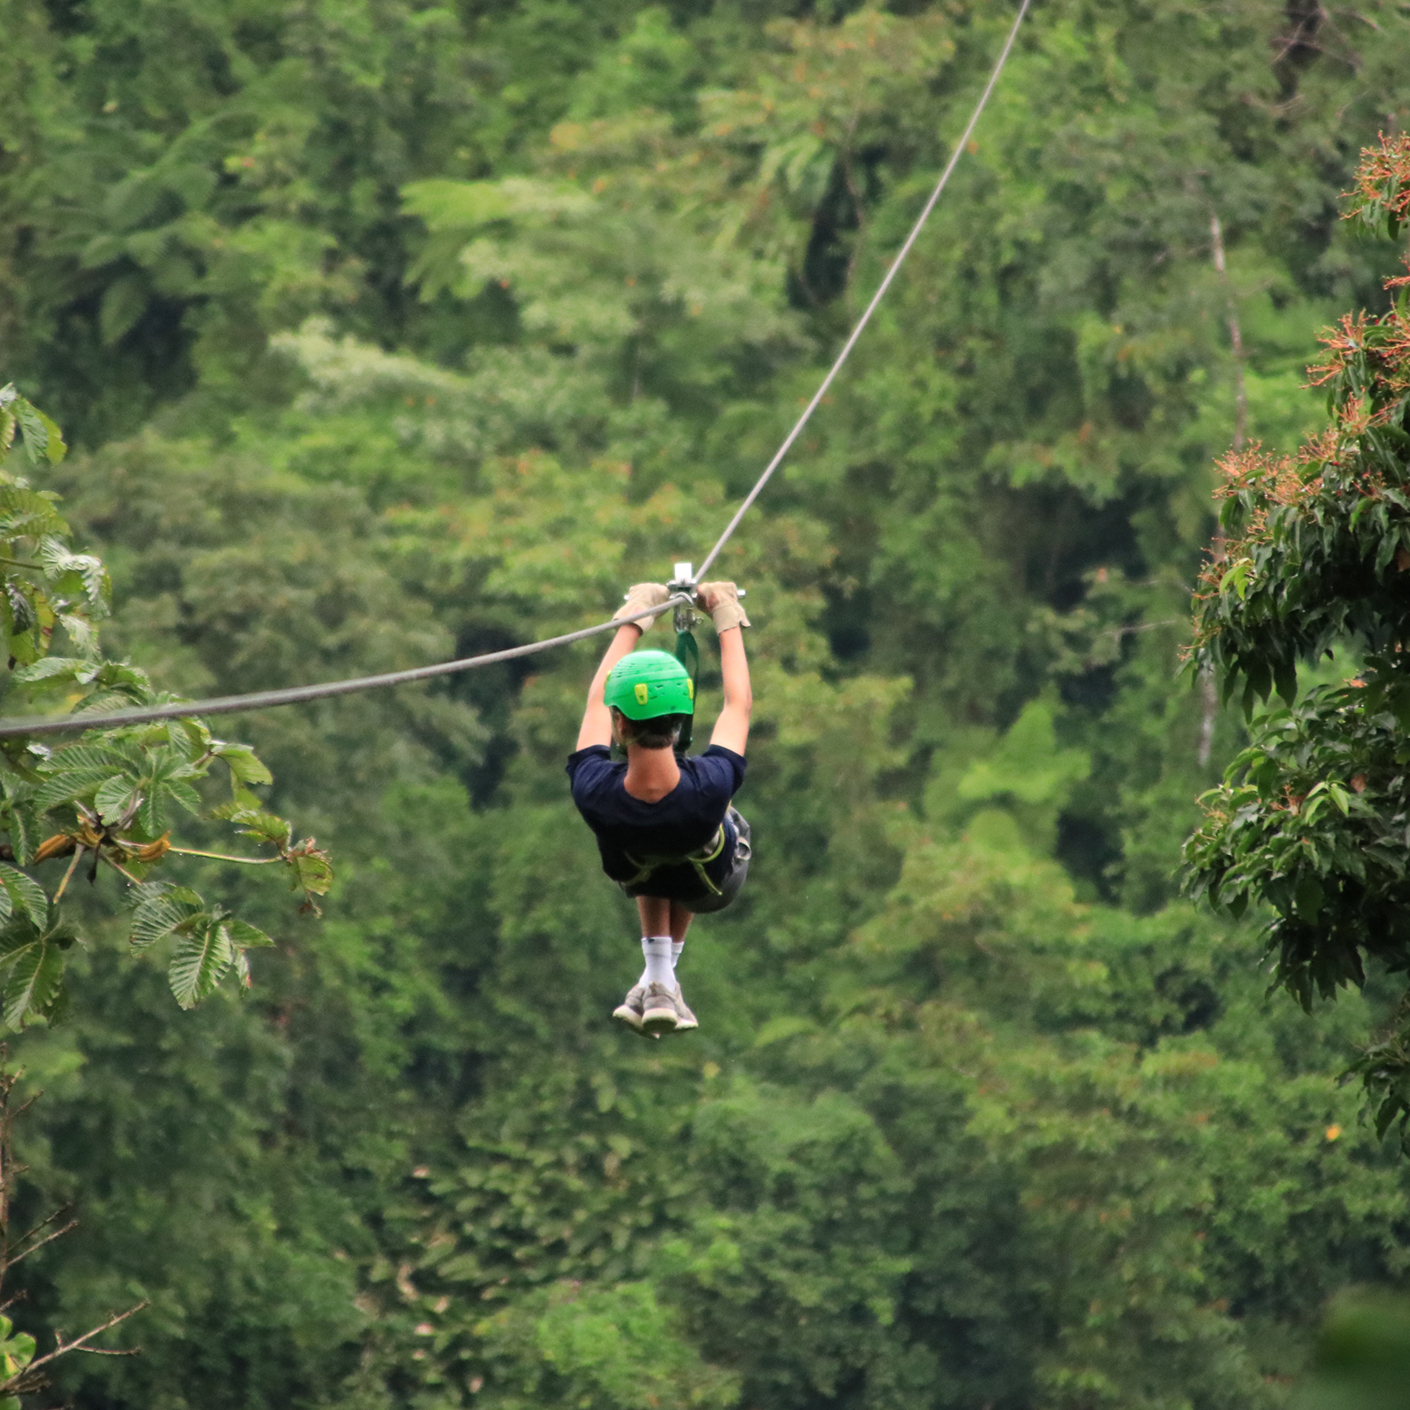 Ziplining on the Costa Rica Pura Vida trip